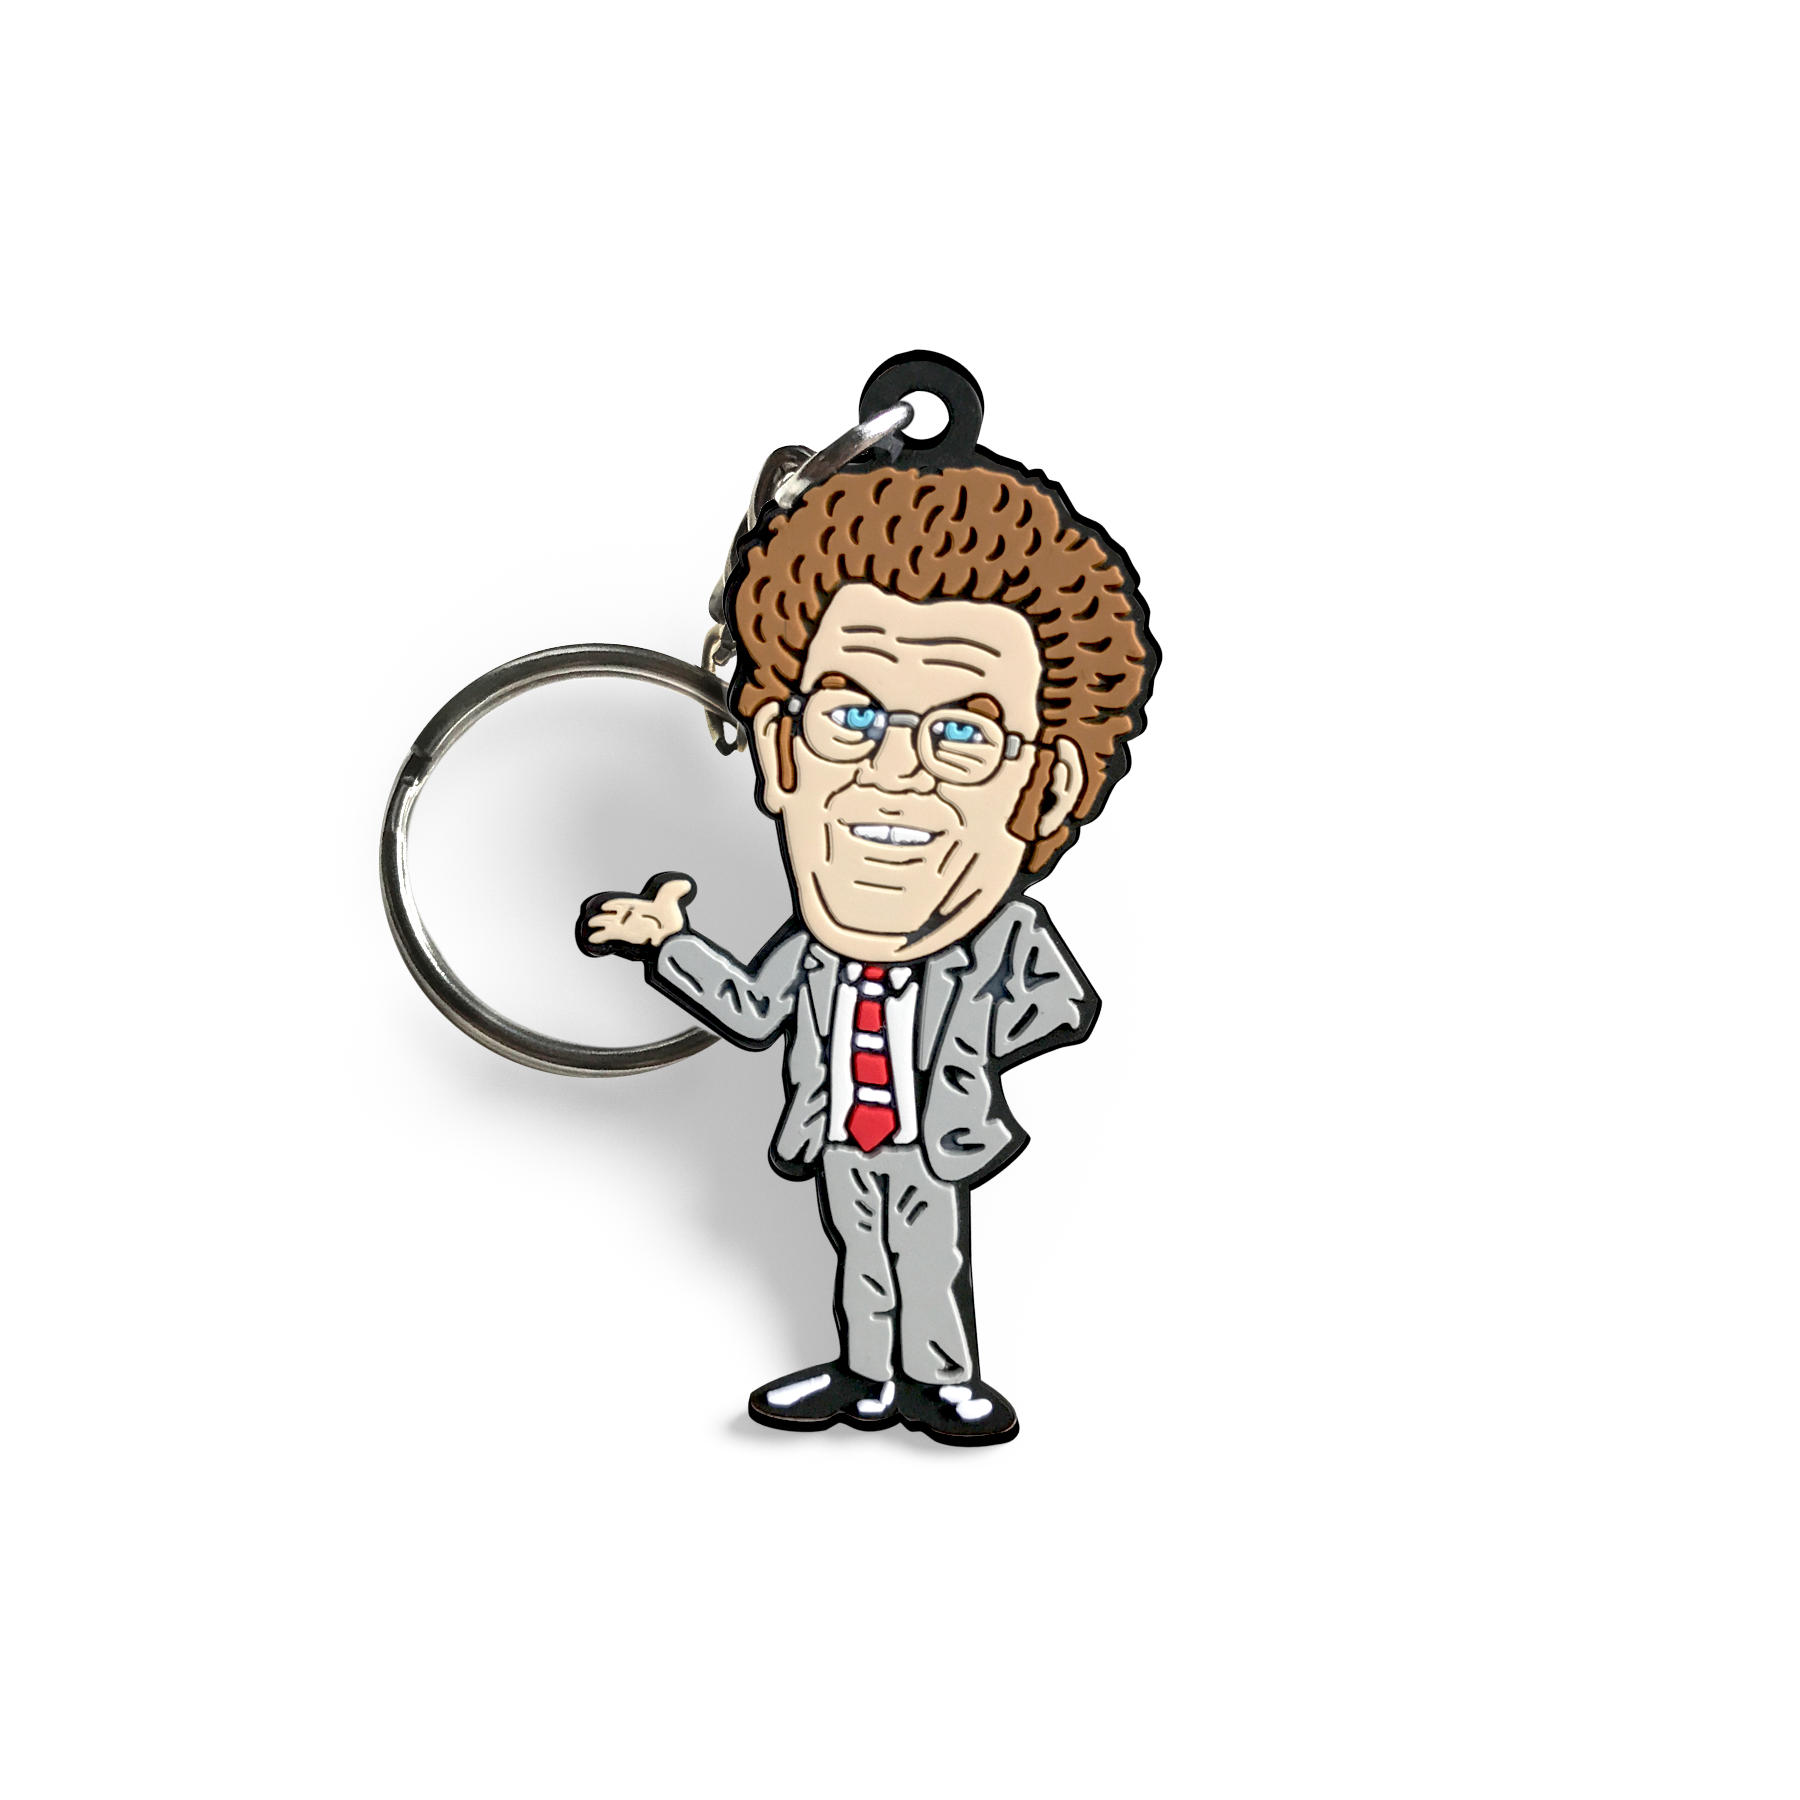 Dr. Steve Brule enamel pin and keychain set